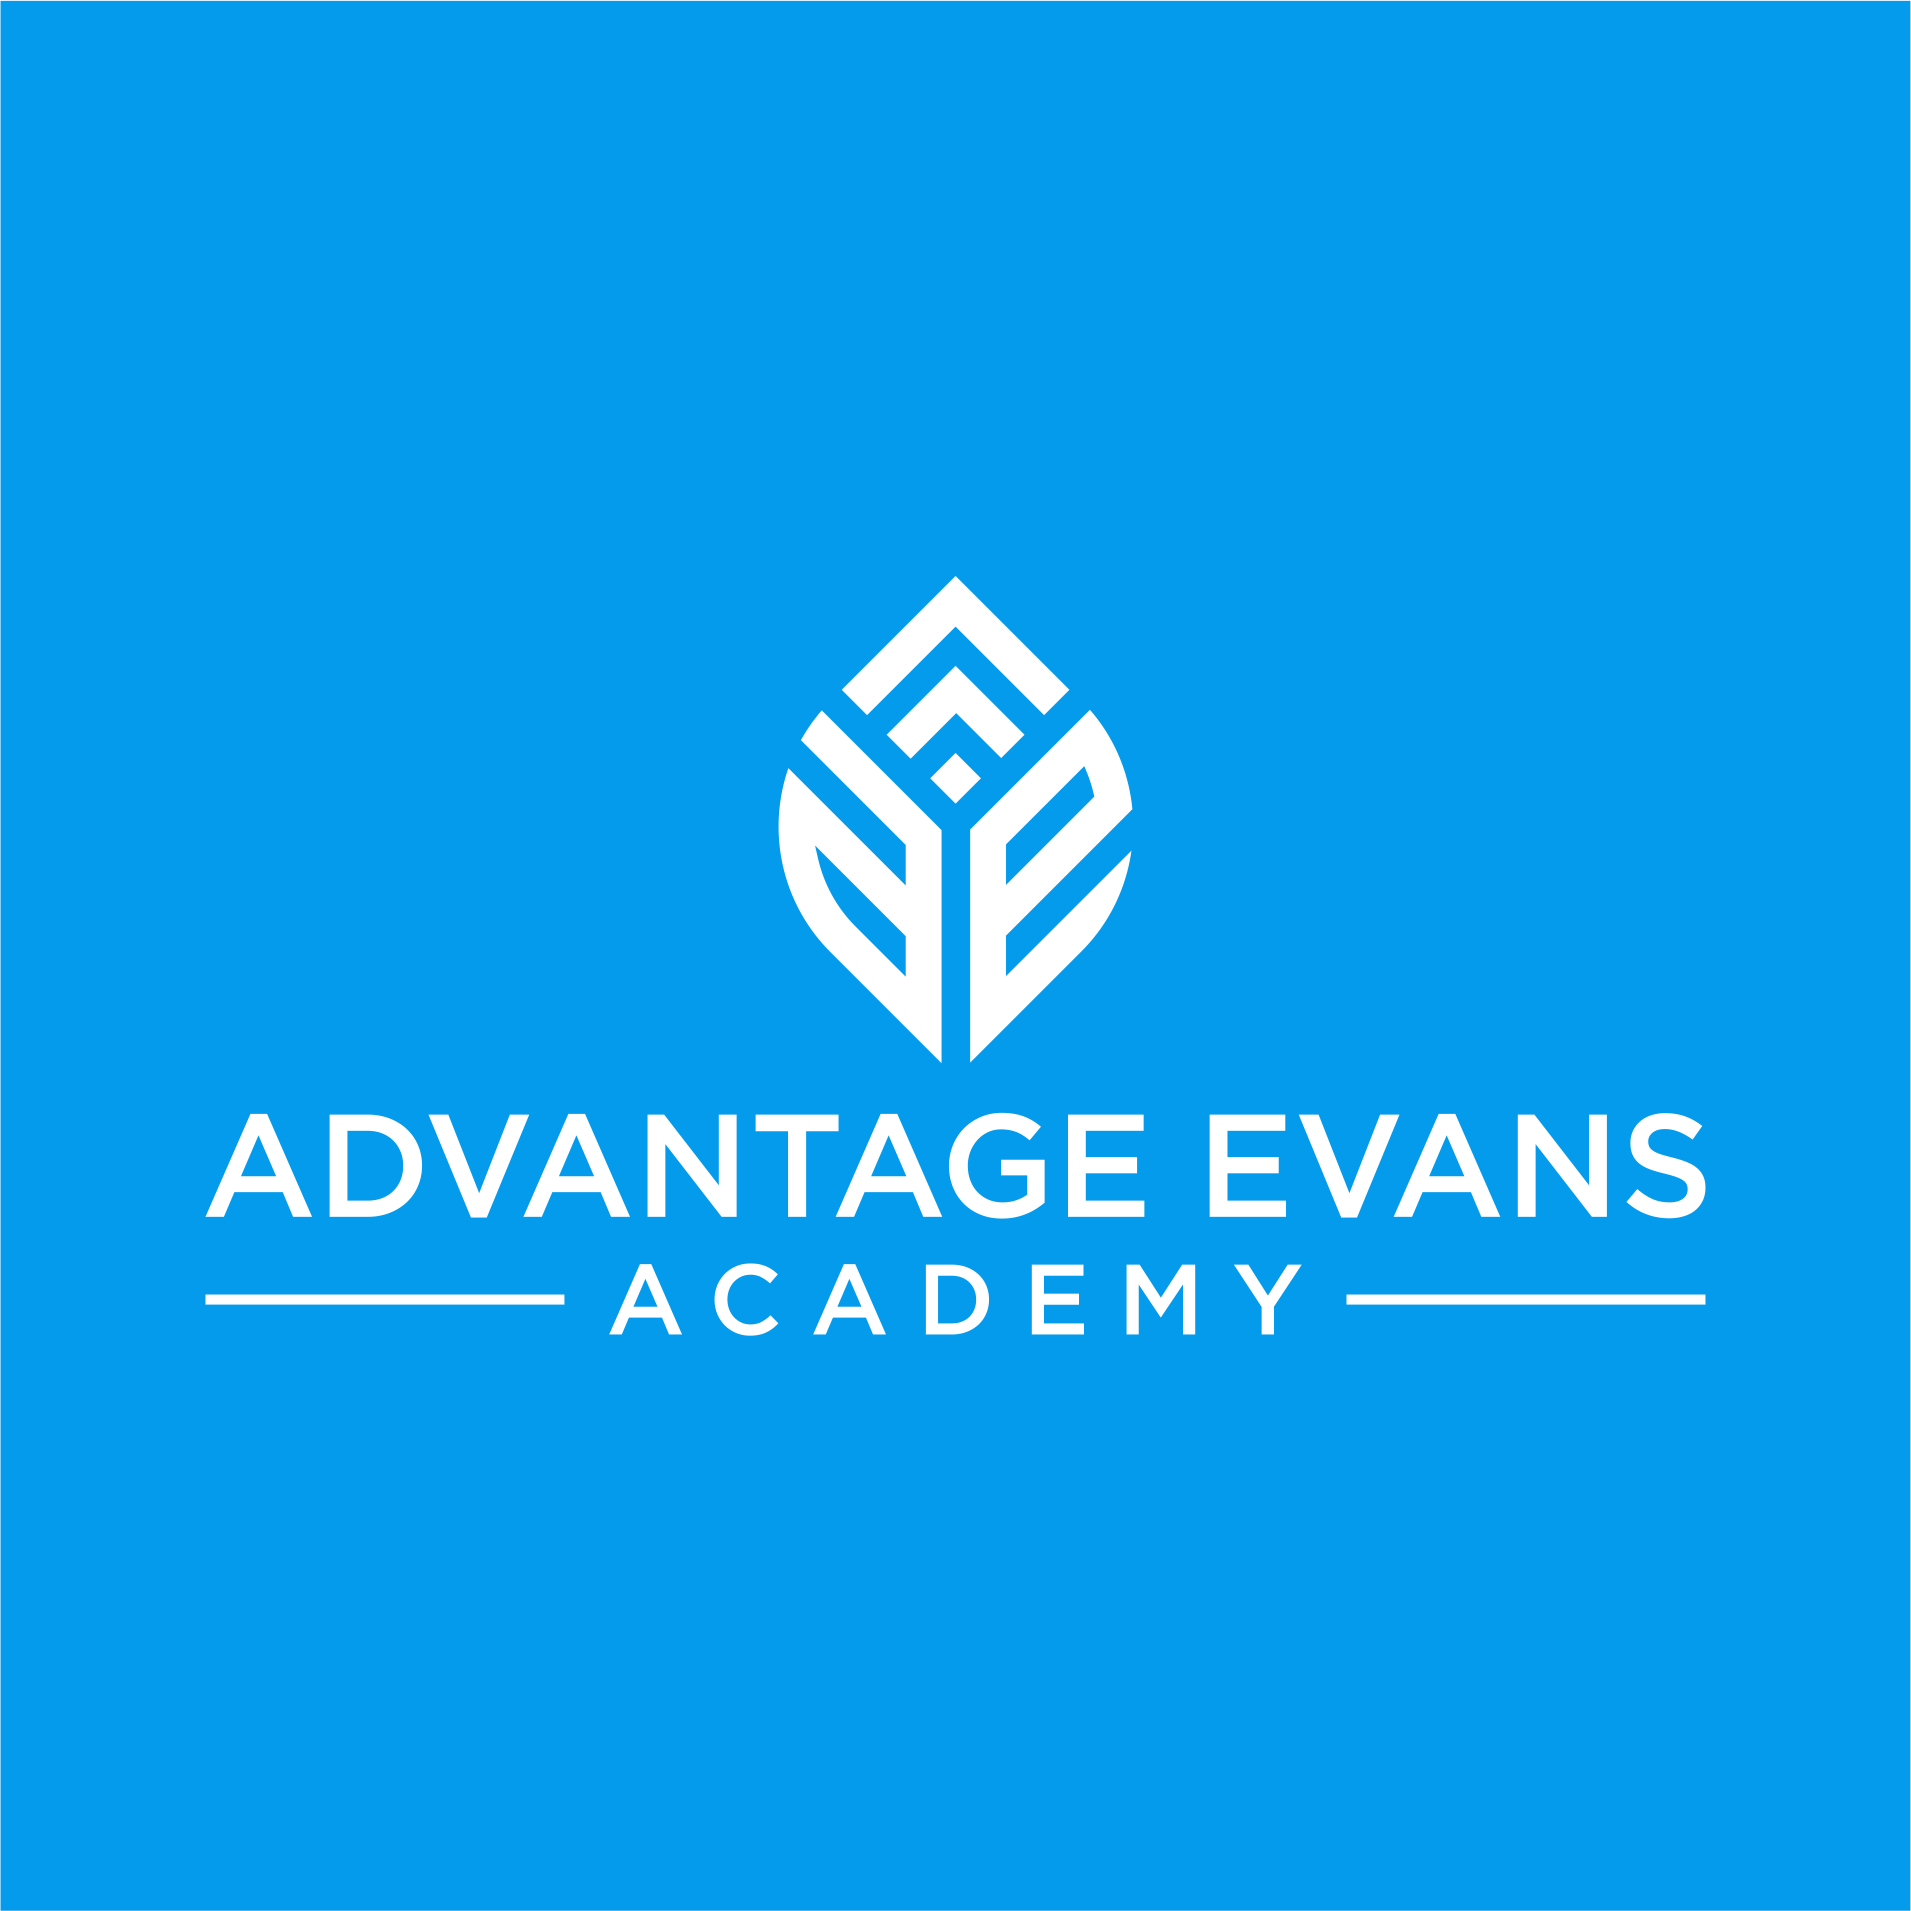 All courses at Advantage Evans Academy